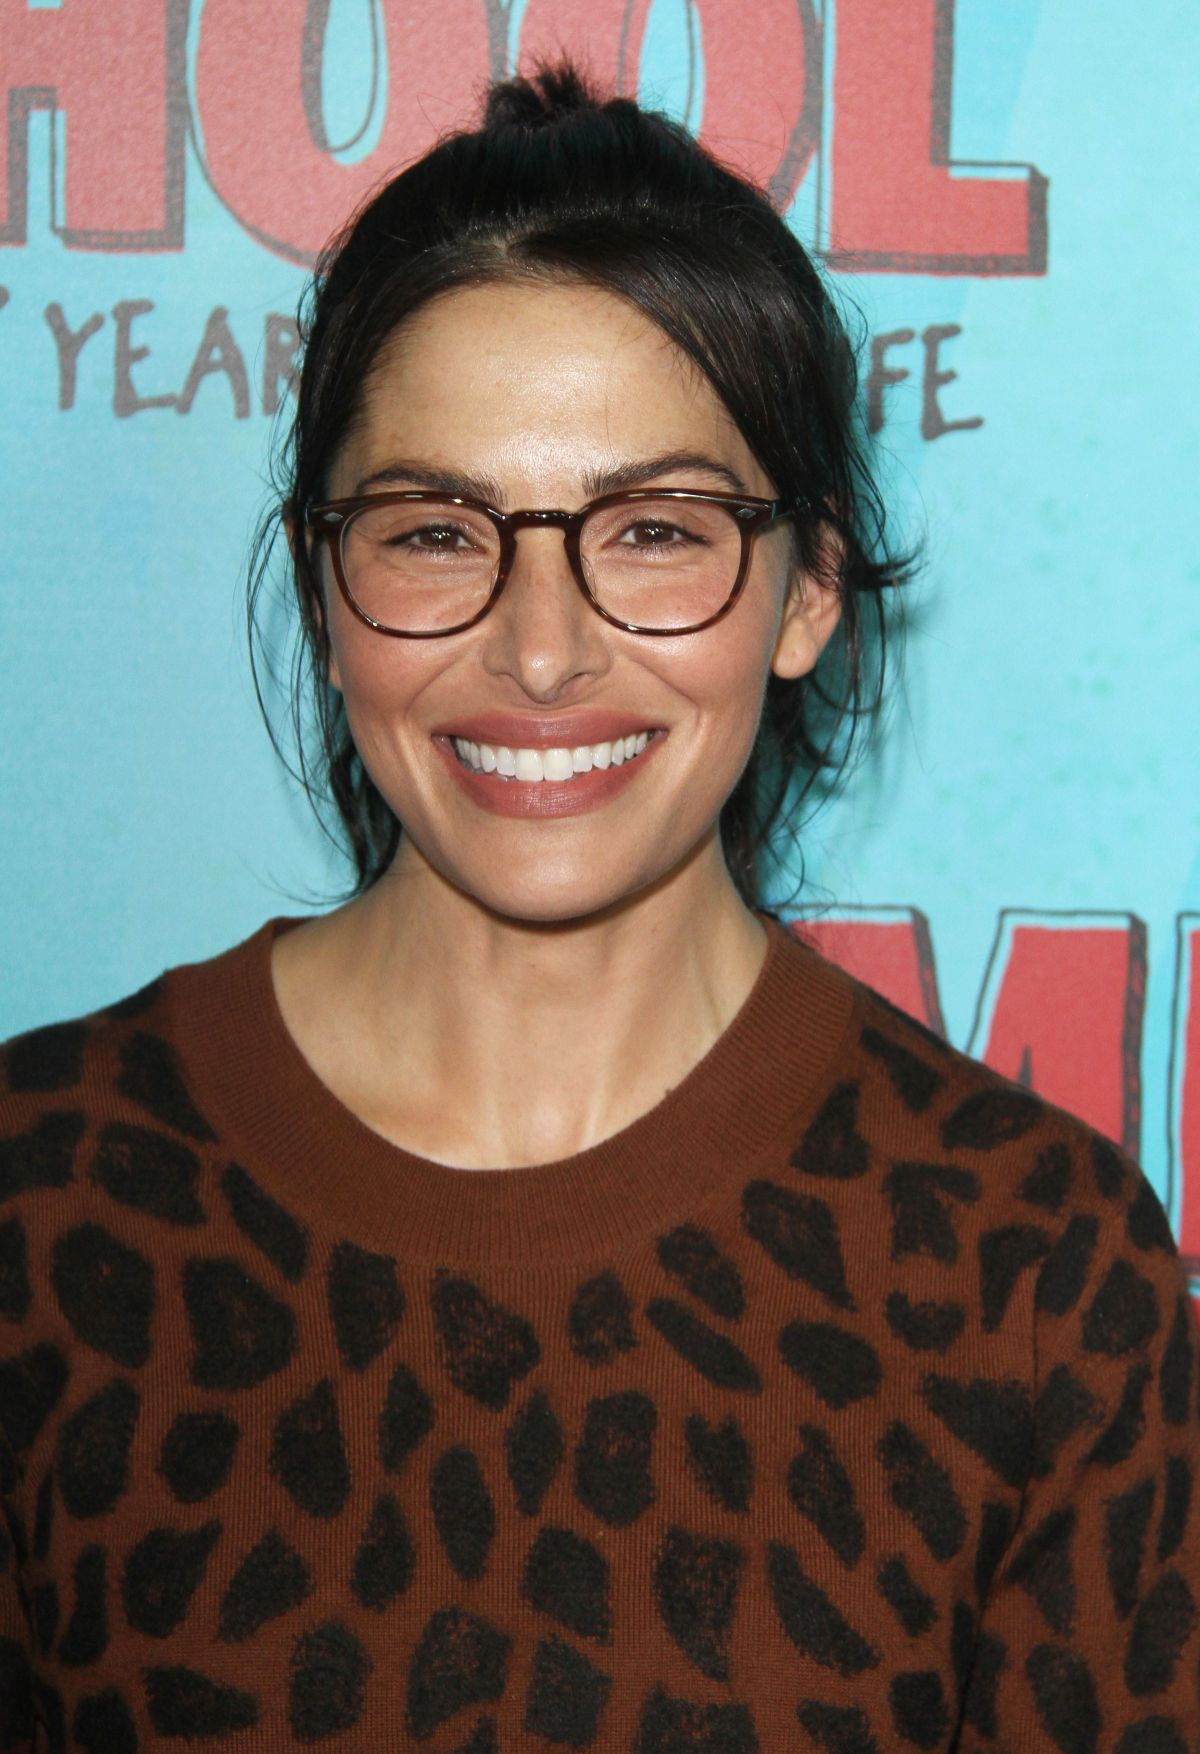 SARAH SHAHI at 'Middle School: The Worst Years of My Life' Premiere in Los Angeles 10/05/2016